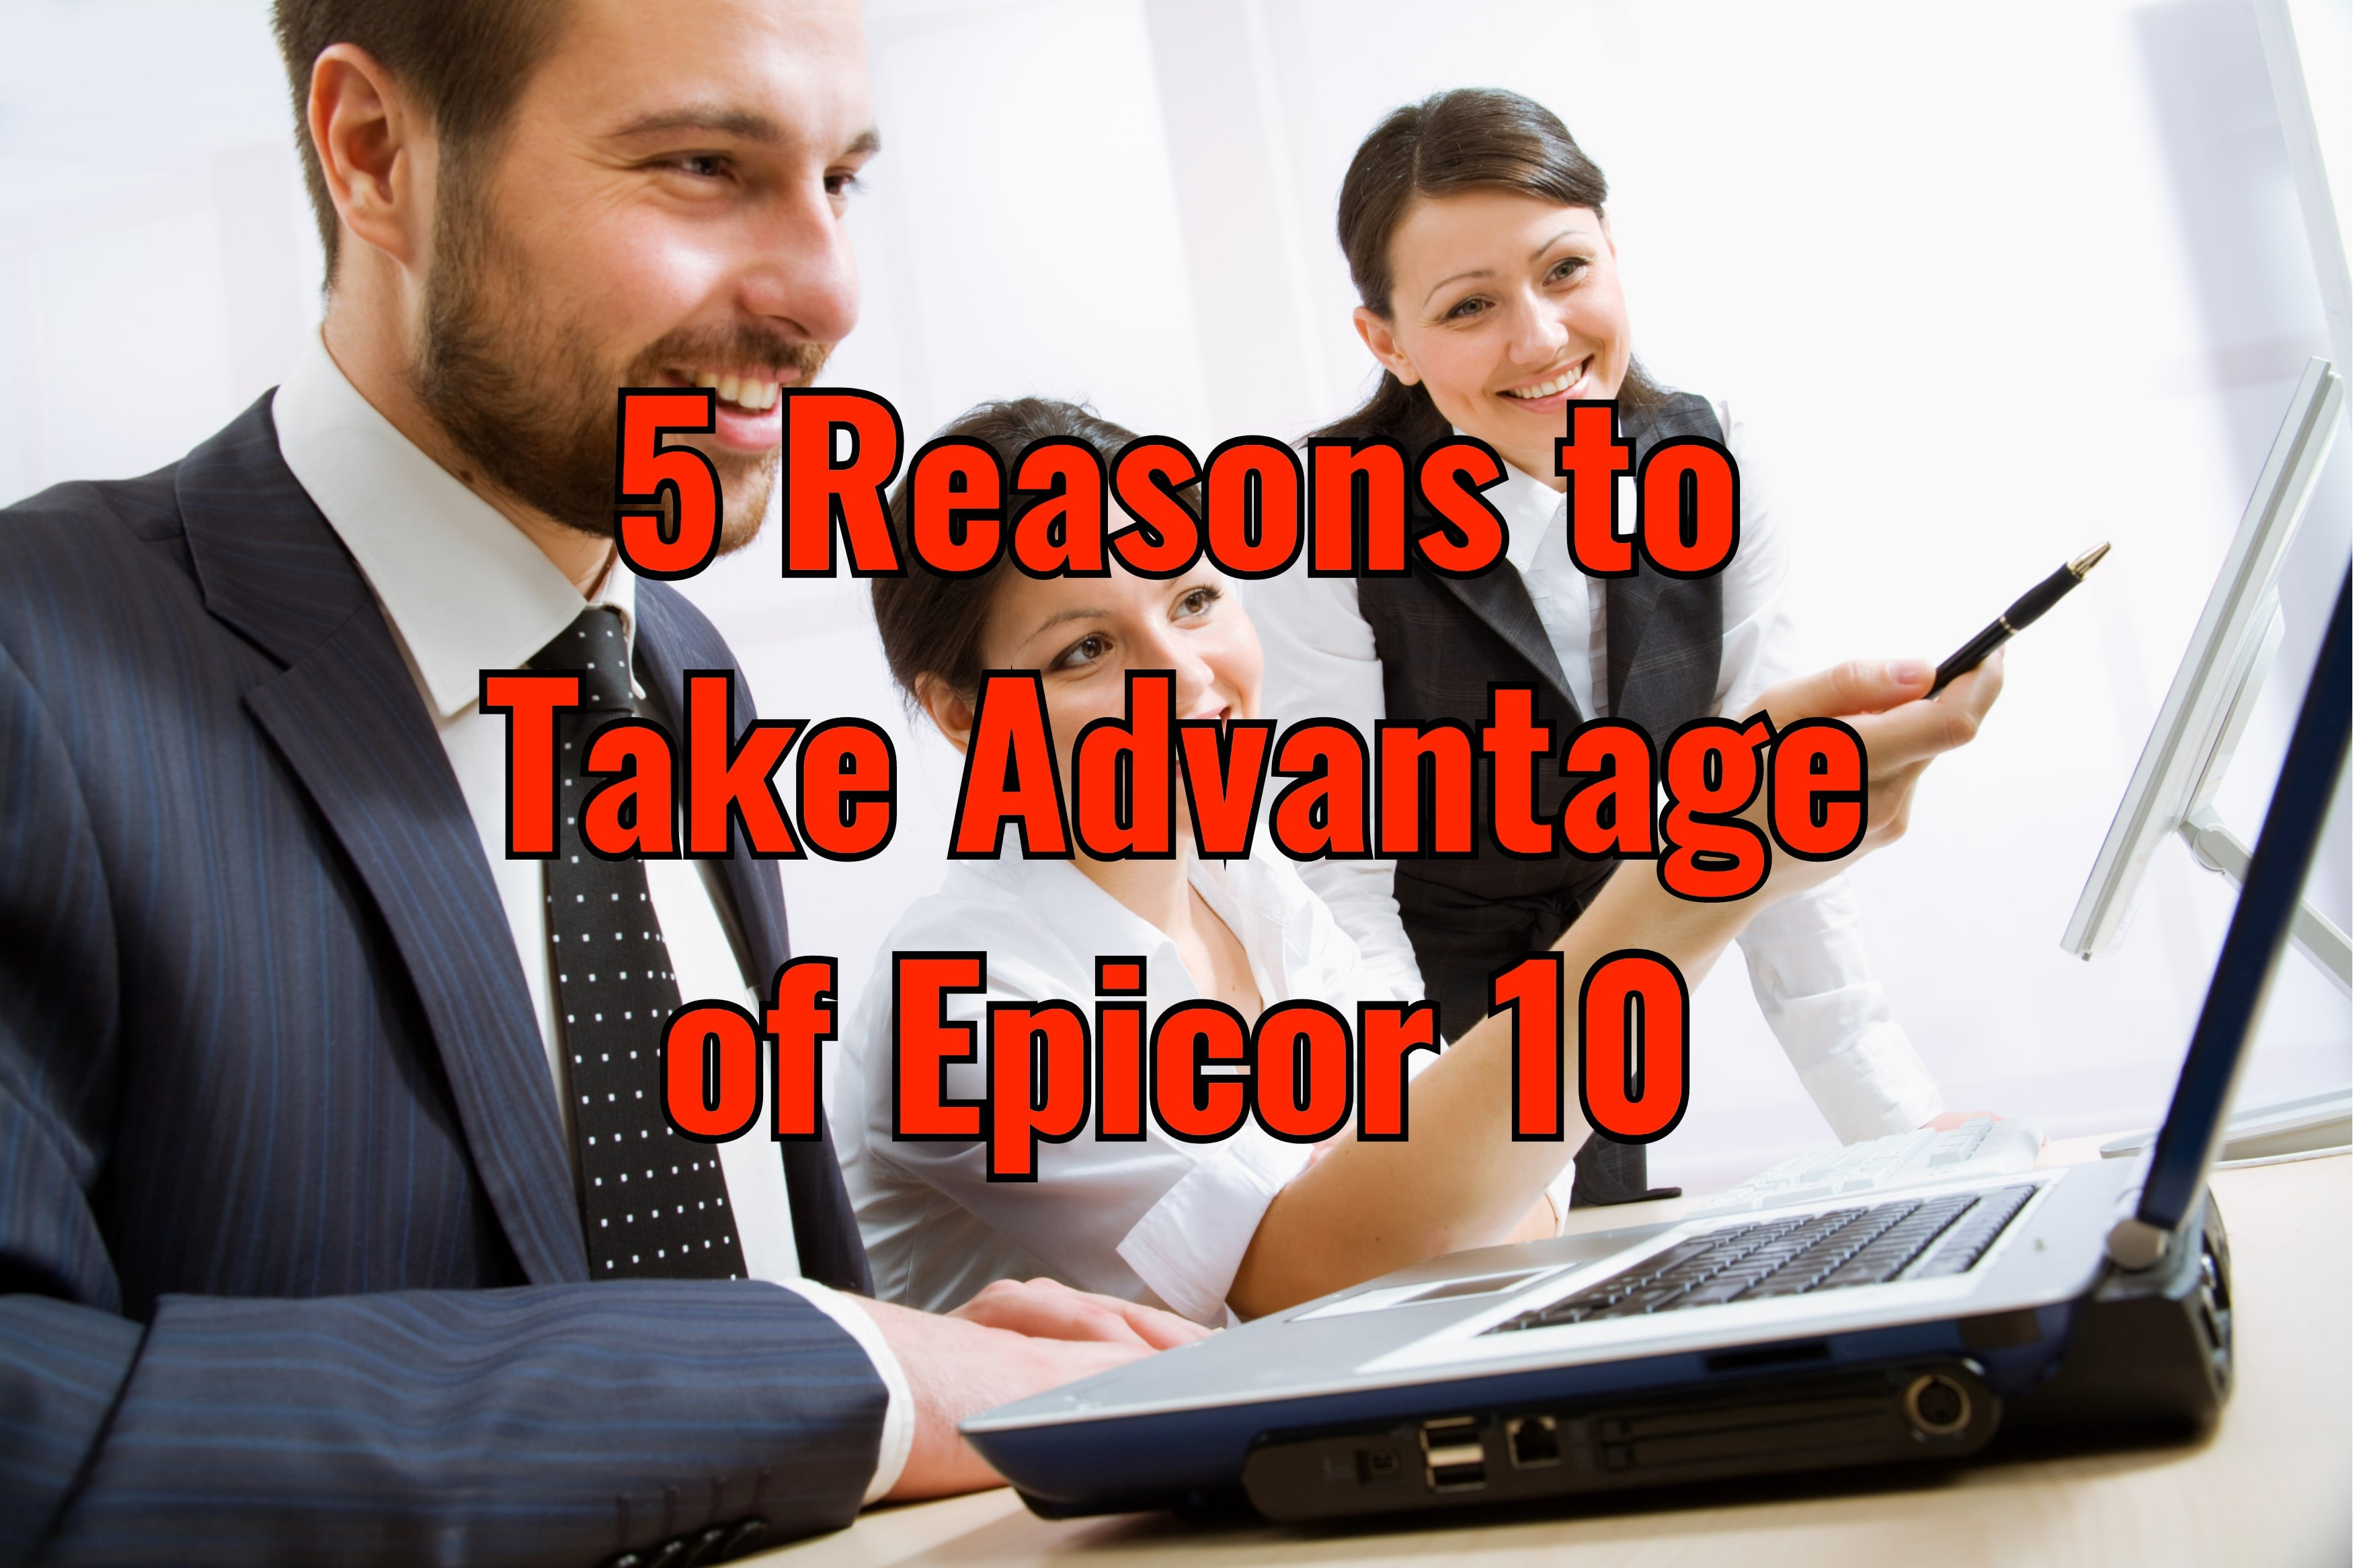 5 Reasons to Take Advantage of Epicor 10